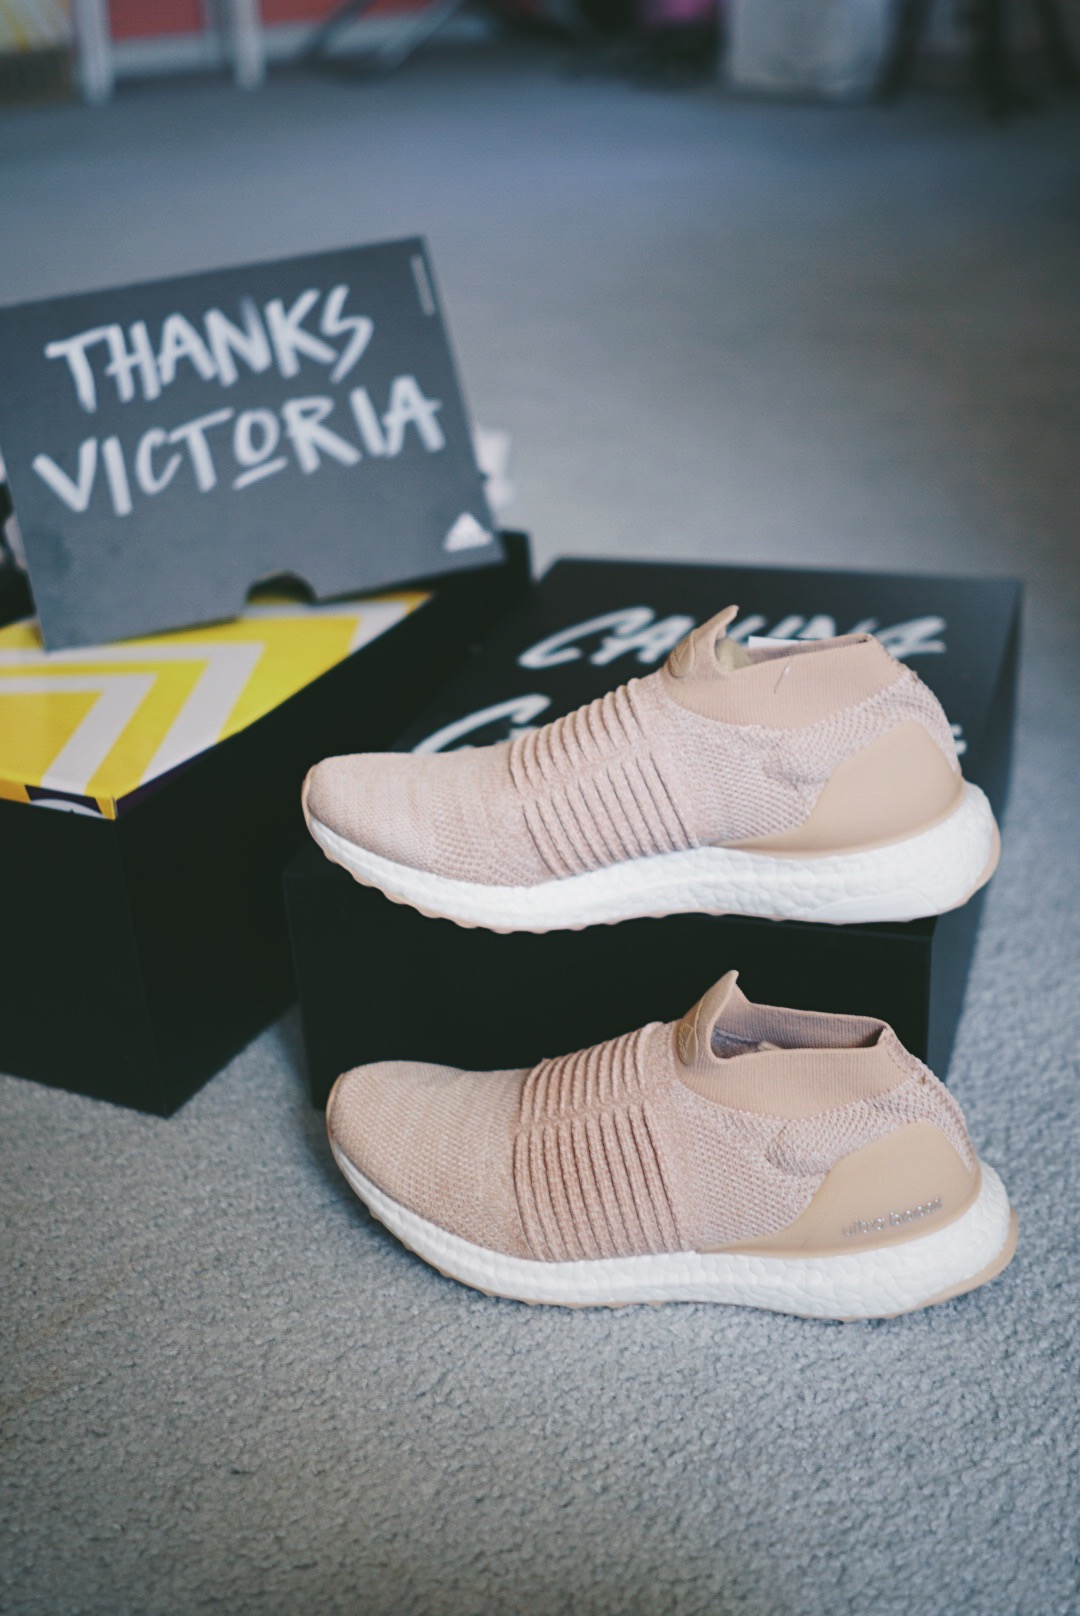 how to get brands to recognize blogs how to partner with big brands partner with micro-influencers the benefits of micro-influencers what can an influencer do for your business adidas ambassador